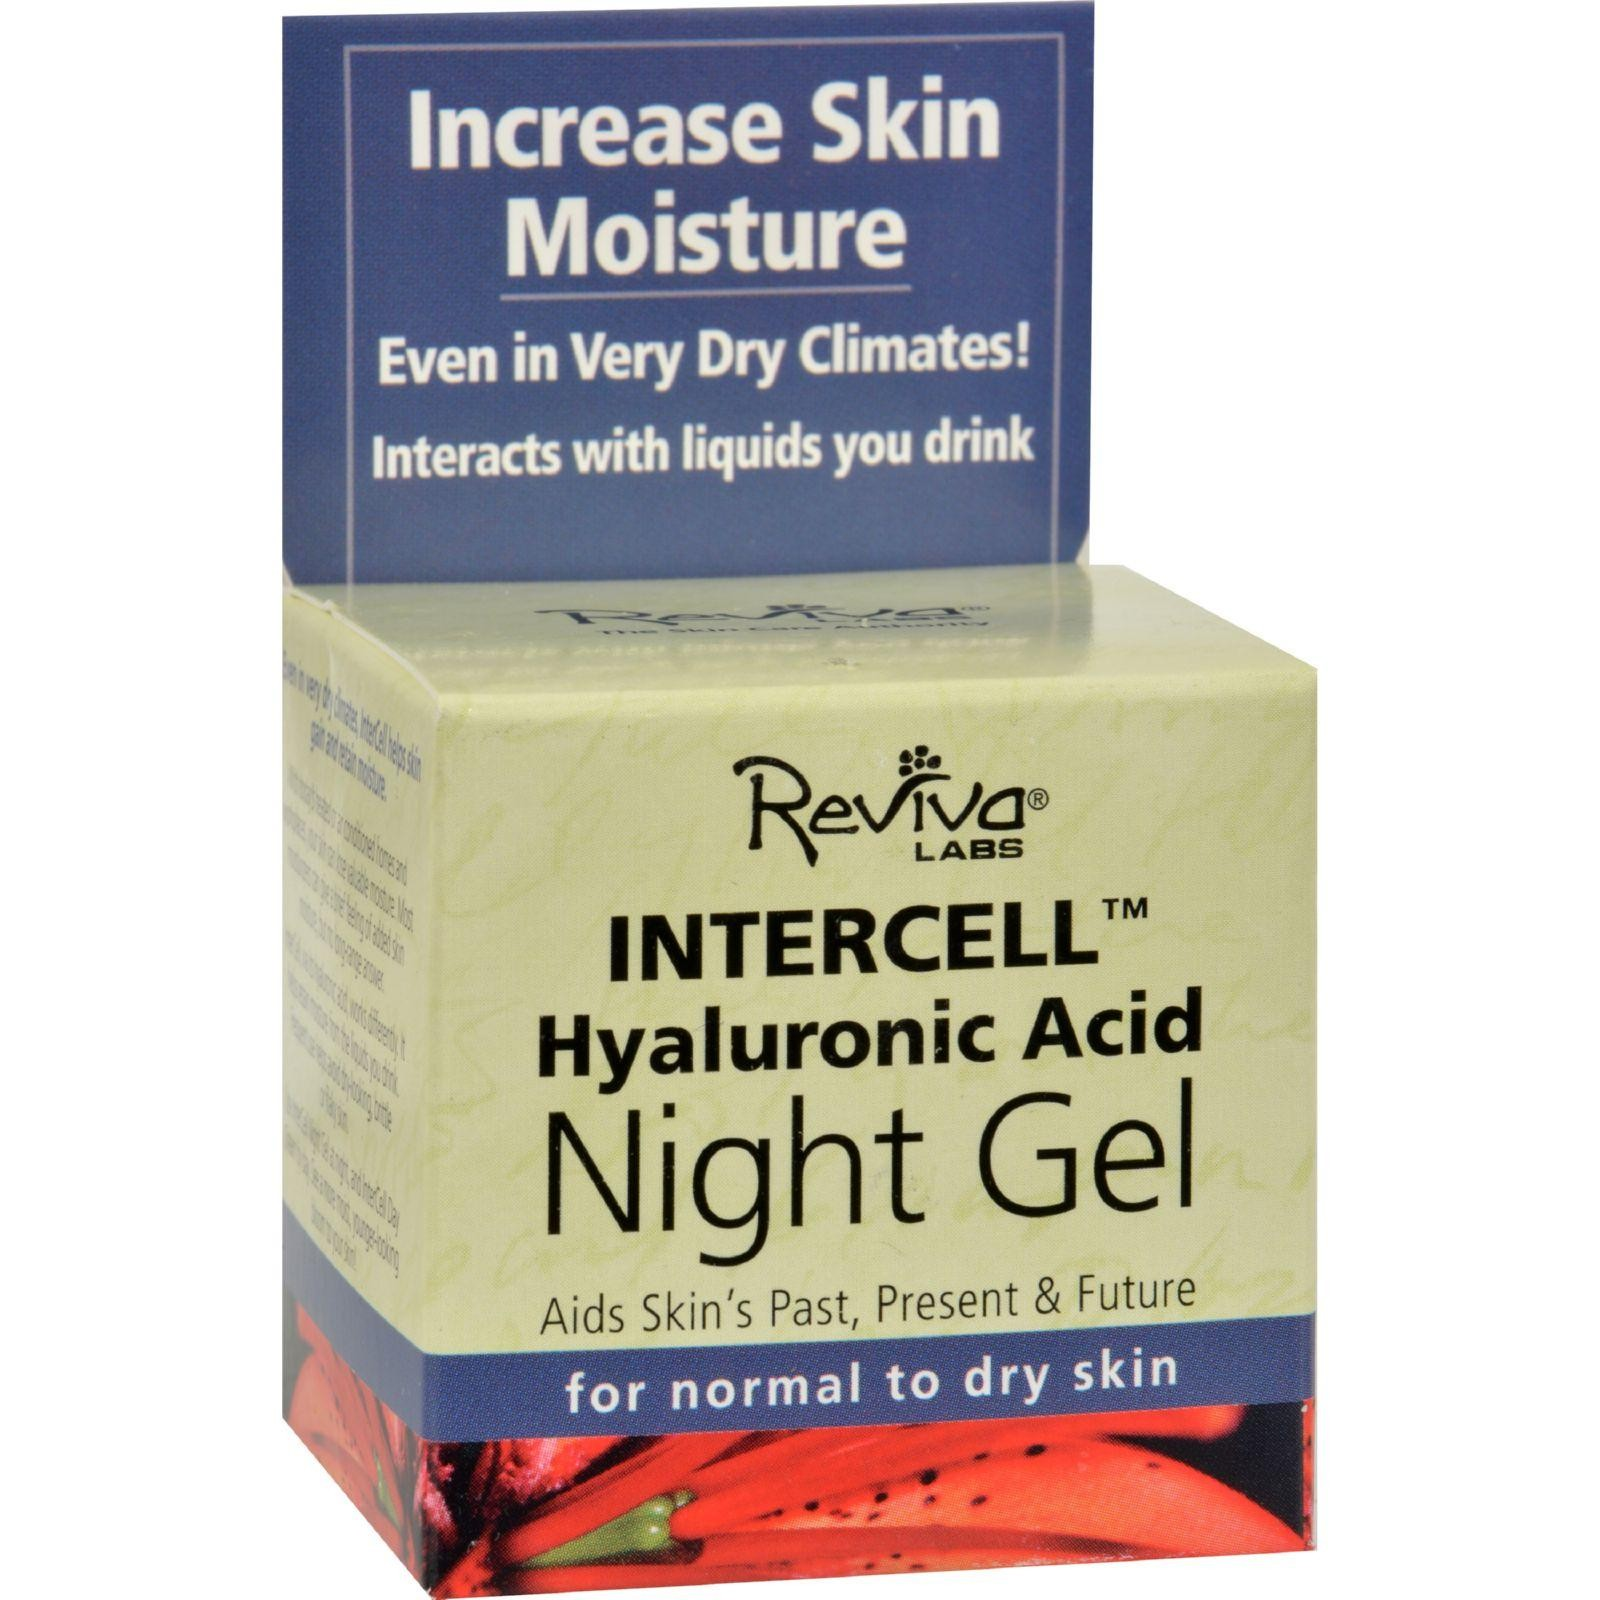 Labs Intercell Night Gel with Hyaluronic Acid, 1.25 Ounce By Reviva Sensai Cellular Performance Extra Intensive Cream 1.4oz